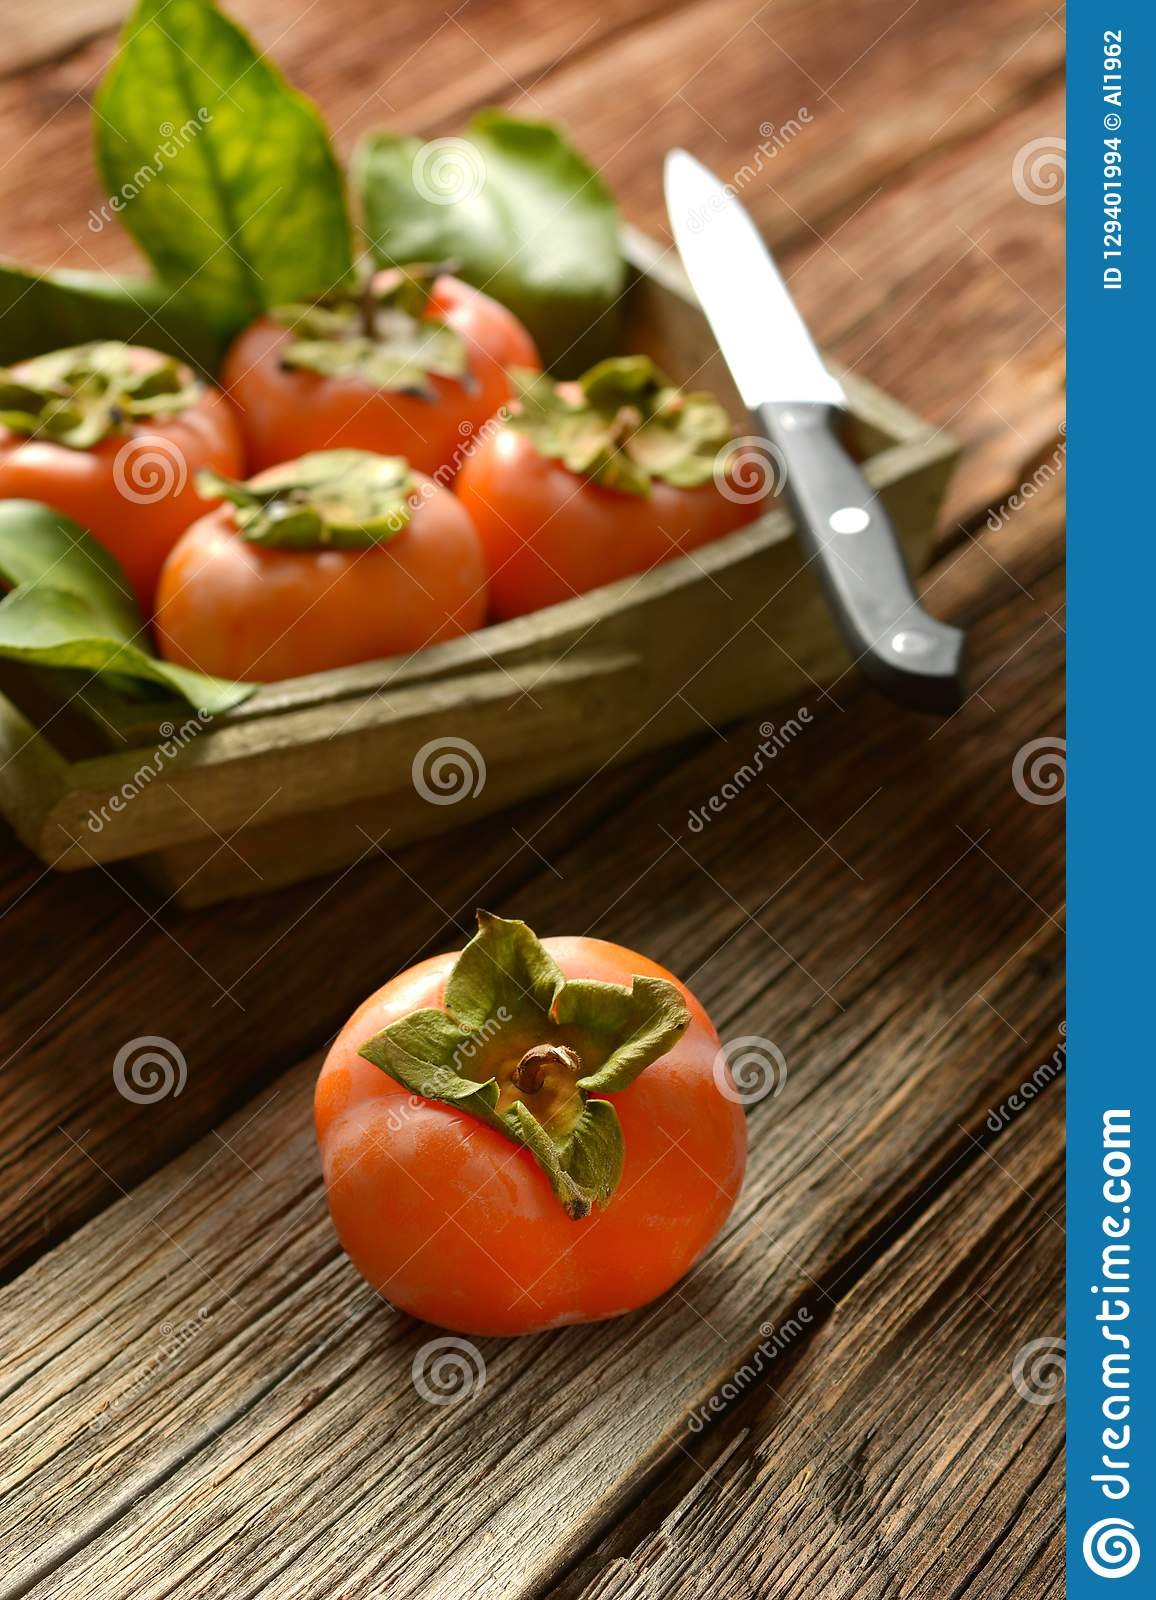 Pile of ripe persimmons on wooden table. Closeup stock images